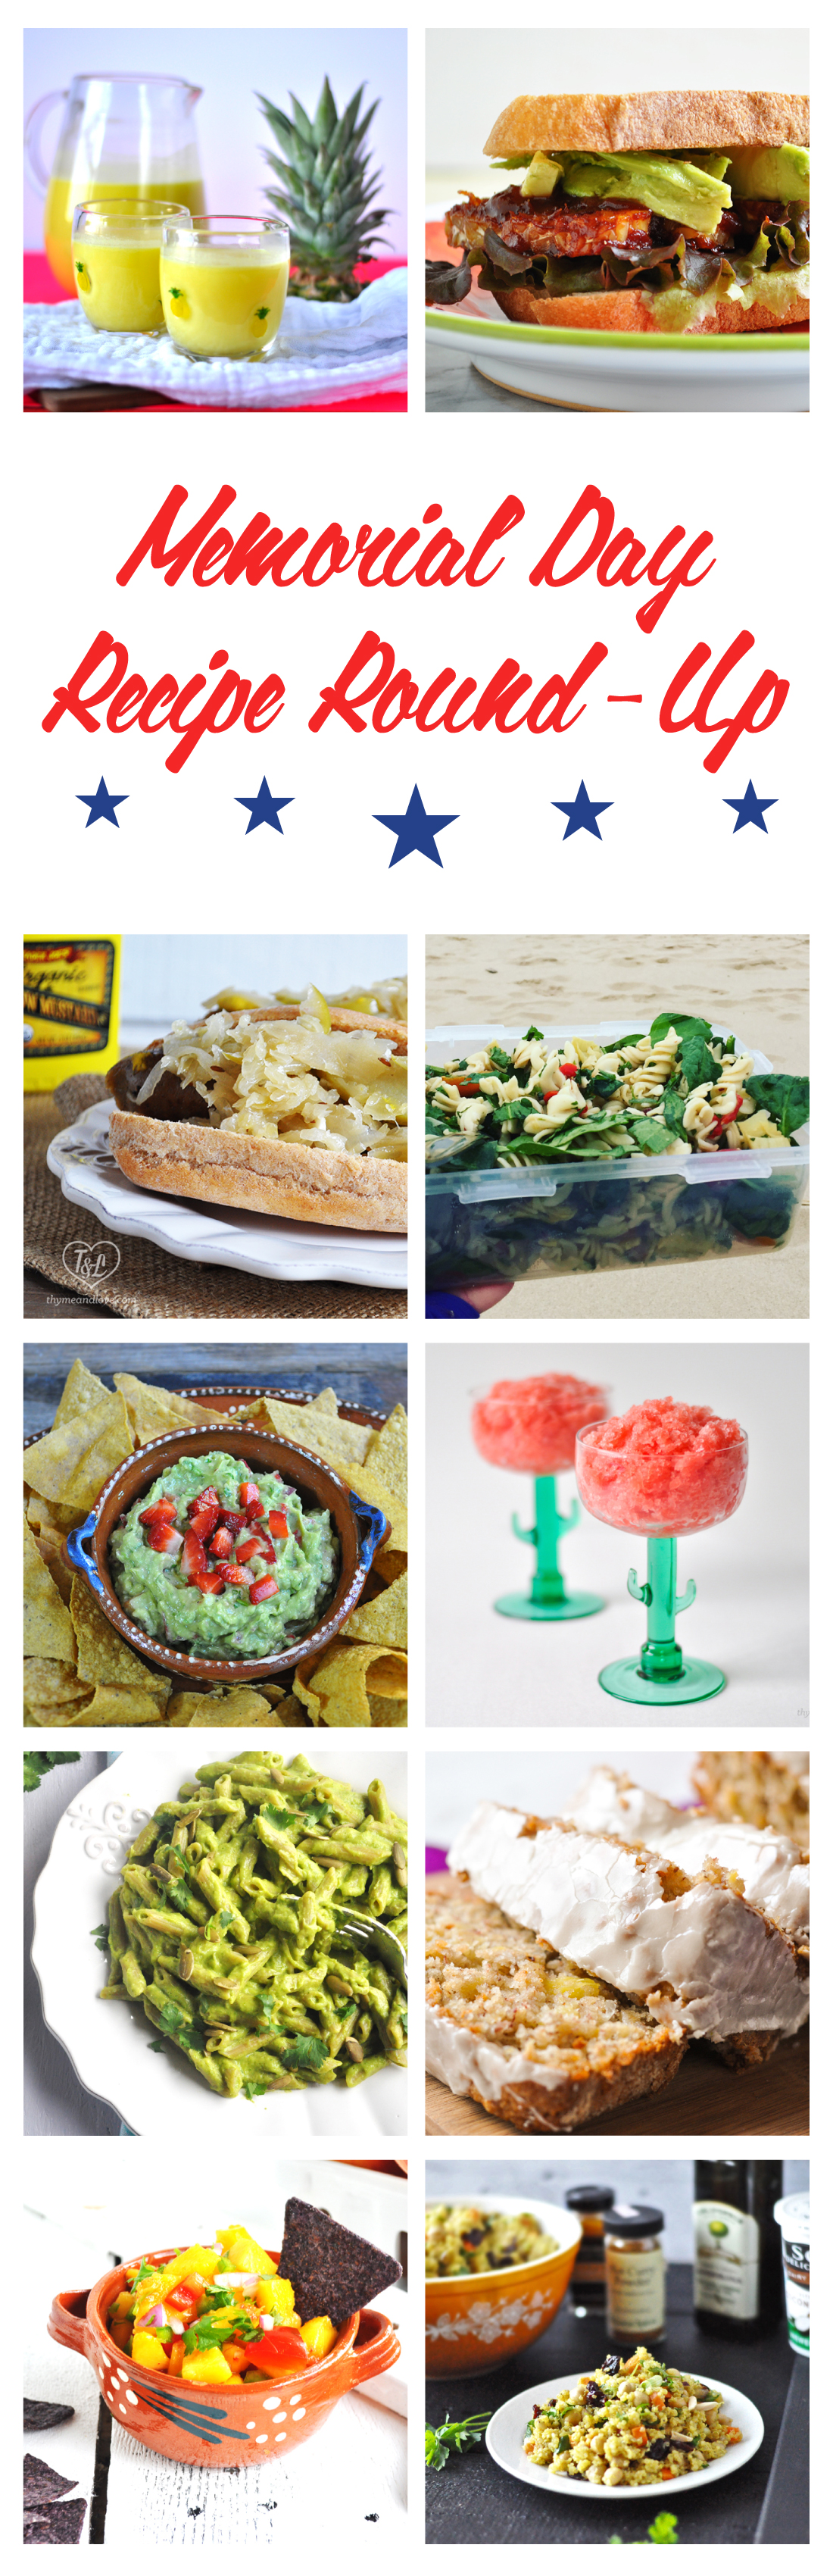 Recipes perfect for your Summer BBQ, picnic, or potluck! A wide range of crowd pleasing recipes. #memorialday #summer #bbq